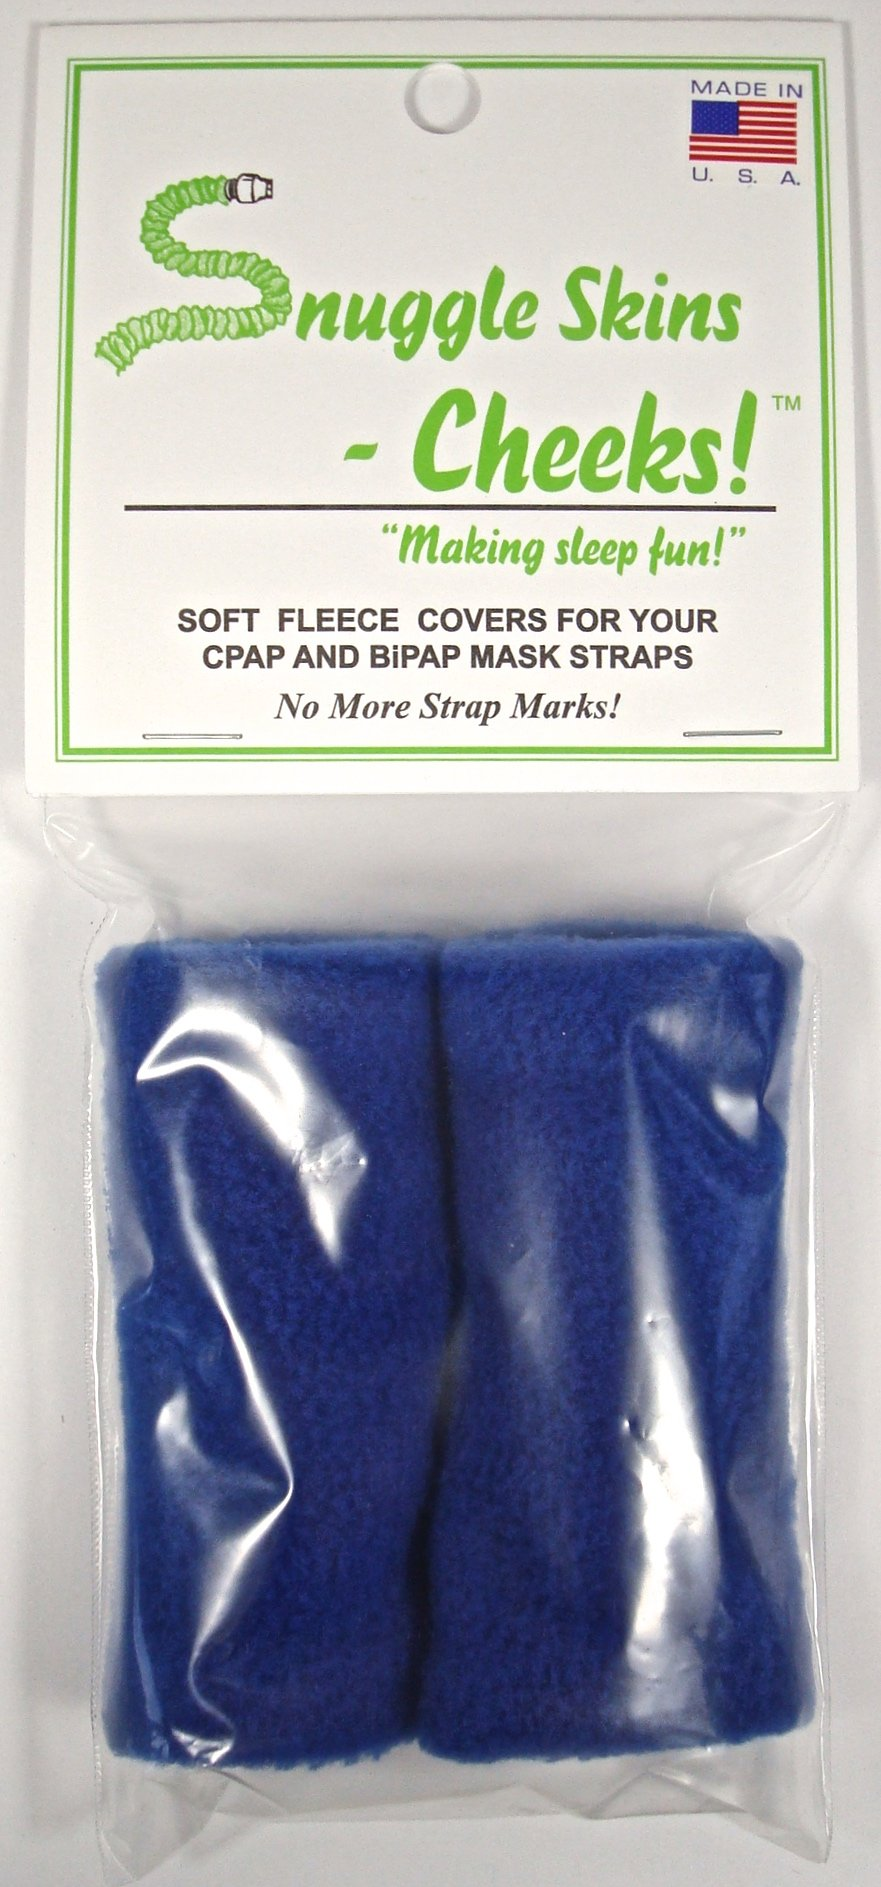 Snuggle Skins Cheeks! - CPAP Straps Covers - No More Strap Marks! (Blue)